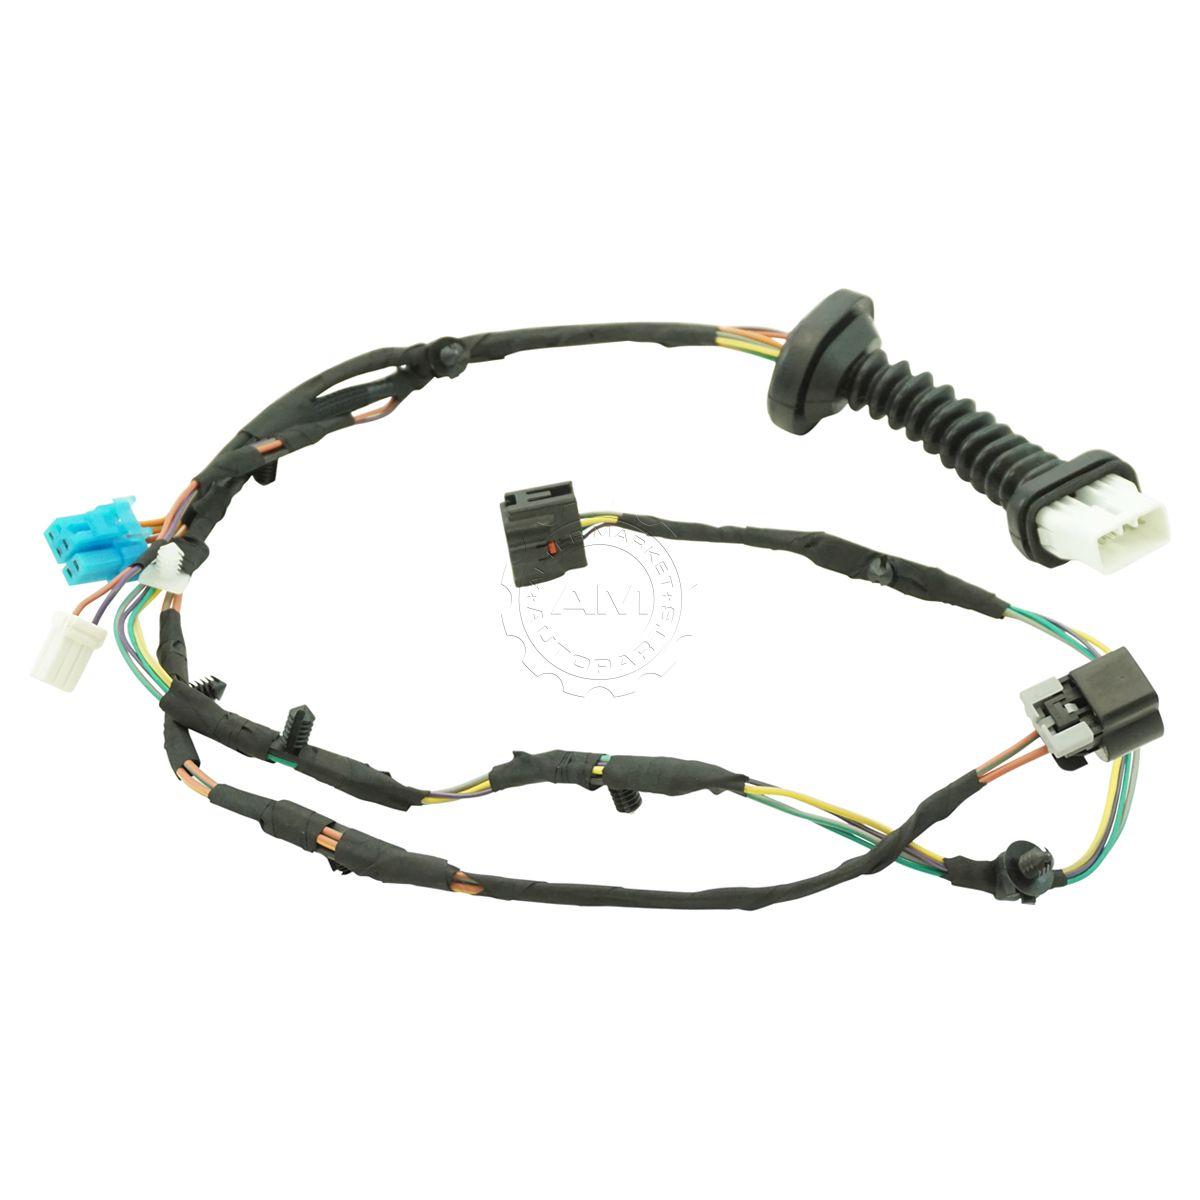 Dorman 645-506 Rear Door Wiring Harness for 04-05 Dodge Ram Pickup Truck